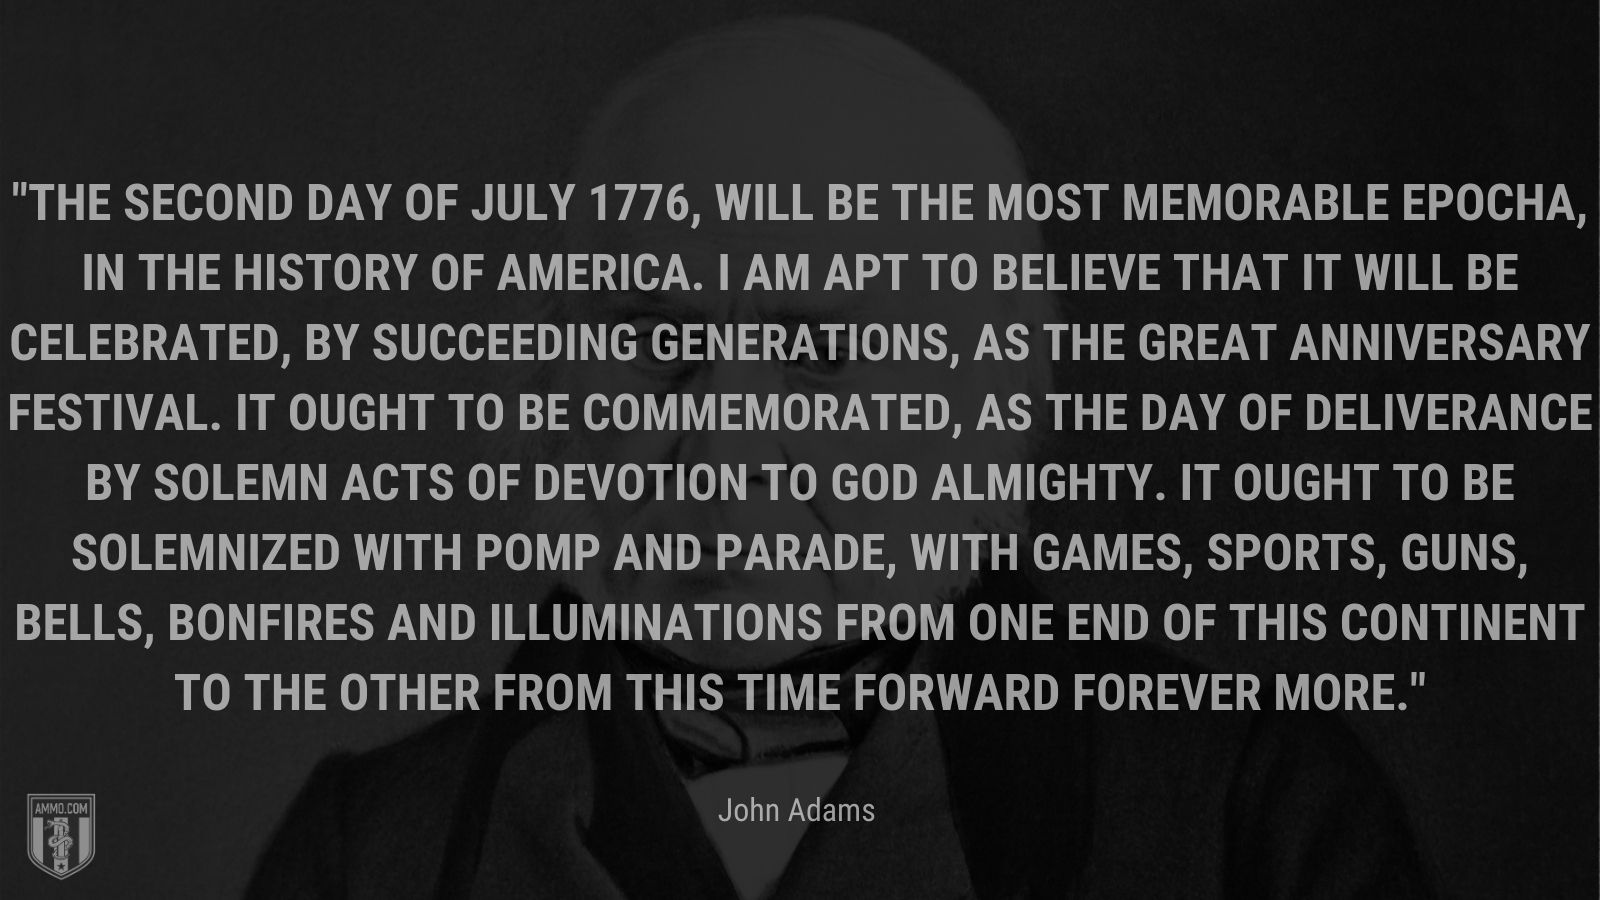 """""""The Second Day of July 1776, will be the most memorable Epocha, in the History of America. I am apt to believe that it will be celebrated, by succeeding Generations, as the great anniversary Festival. It ought to be commemorated, as the Day of Deliverance by solemn Acts of Devotion to God Almighty. It ought to be solemnized with Pomp and Parade, with Games, Sports, Guns, Bells, Bonfires and Illuminations from one End of this Continent to the other from this Time forward forever more."""" - John Adams"""